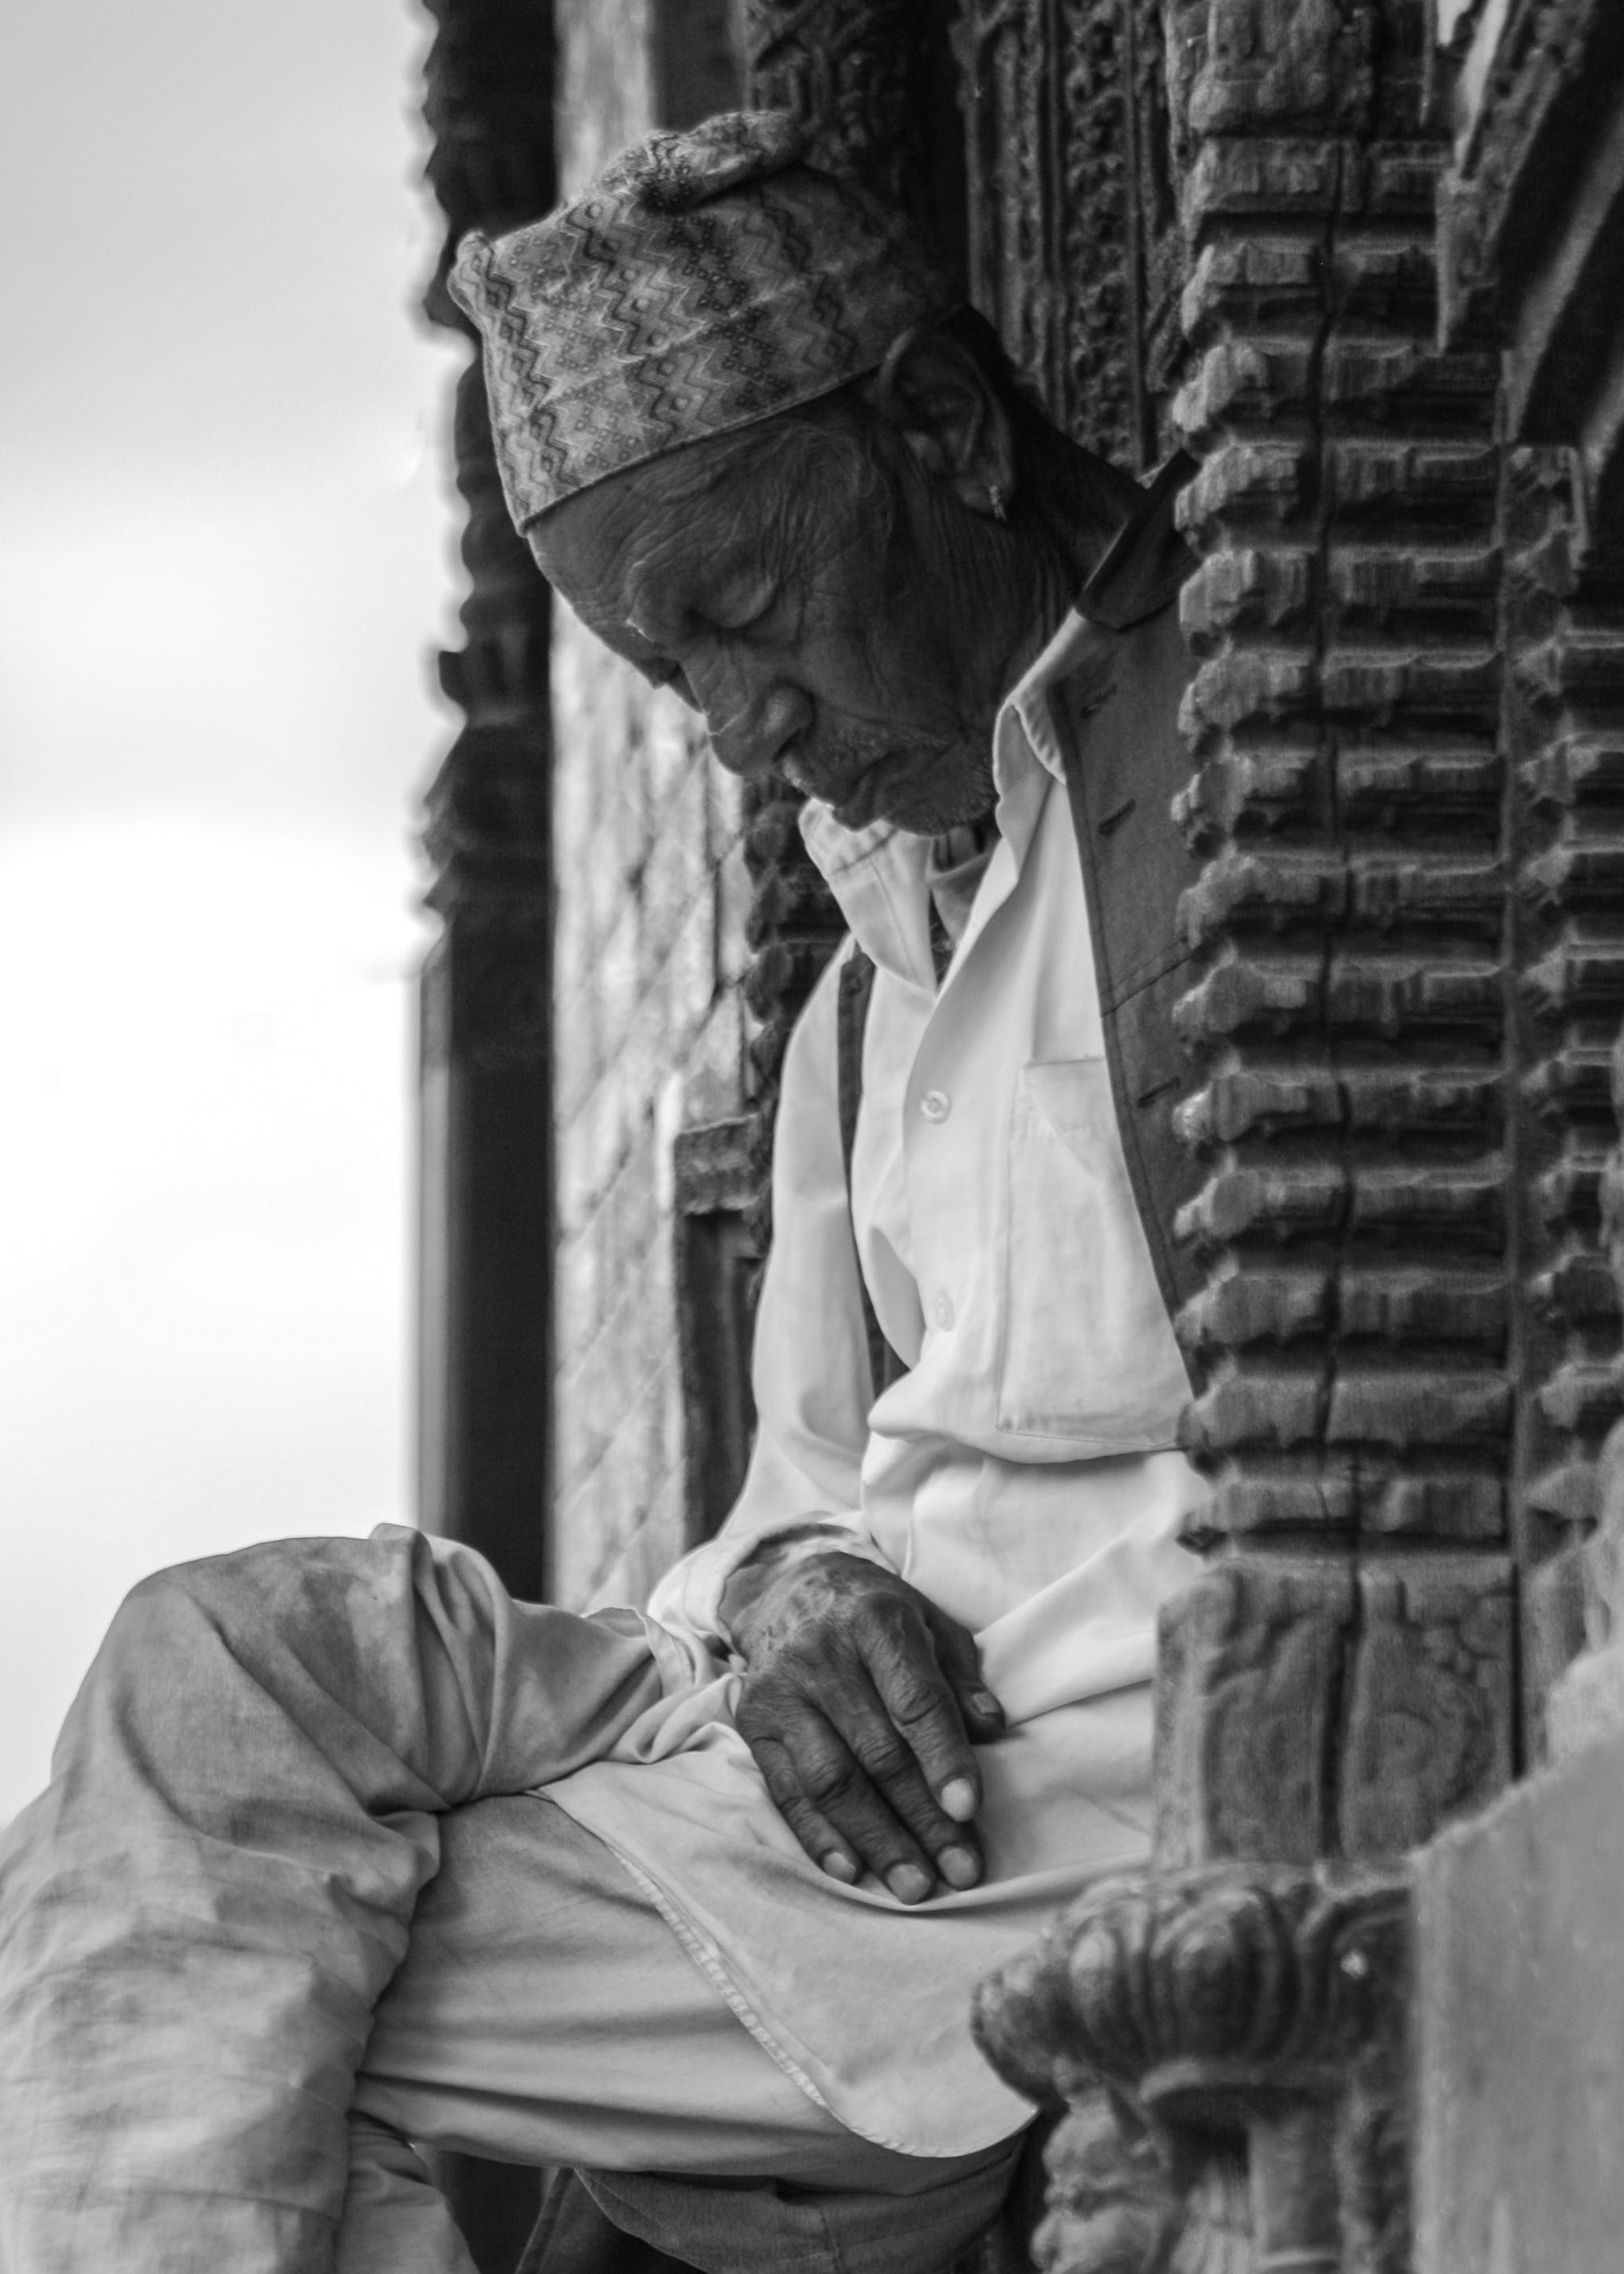 Grayscale Photo of Man Sleeping